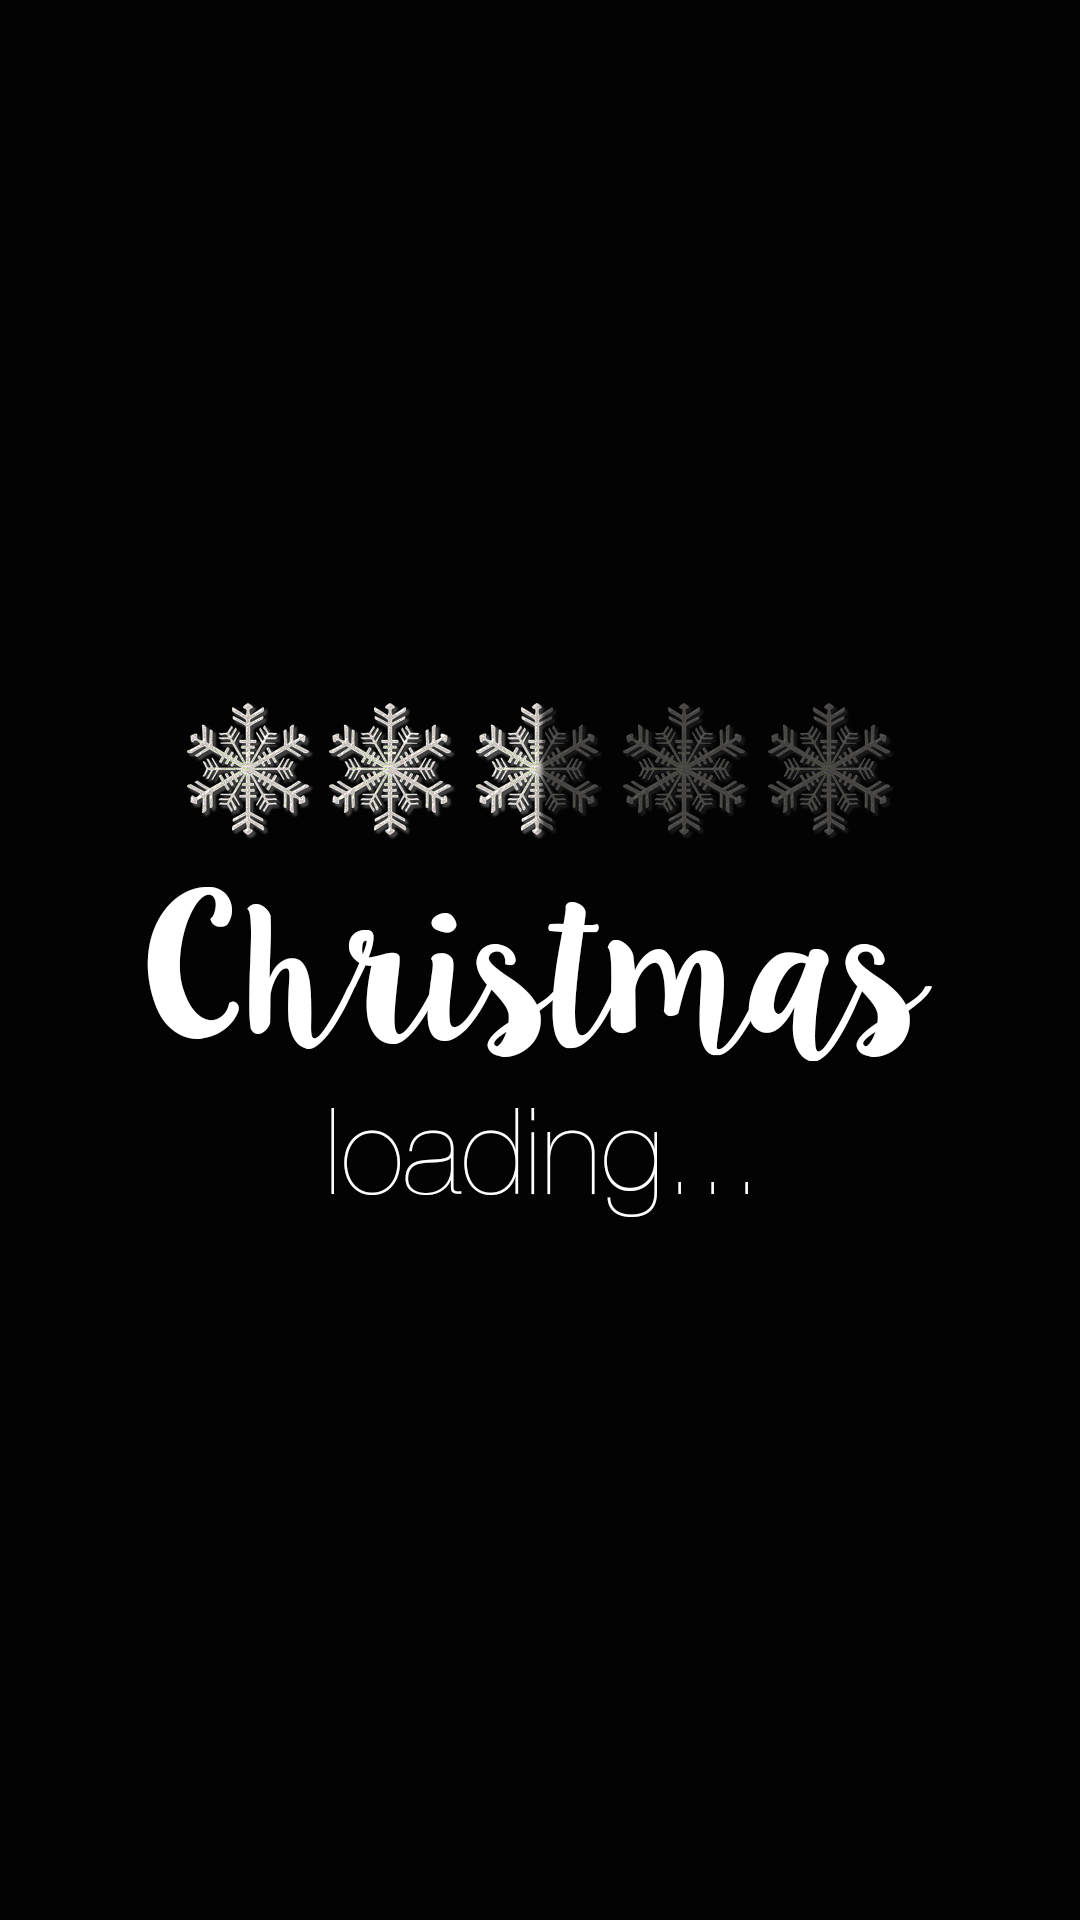 Christmas Is Loading Wallpaper Background Lock Screen For Android Cellphone Iphone Christmaswallpaperiphone Dengan Gambar Kutipan